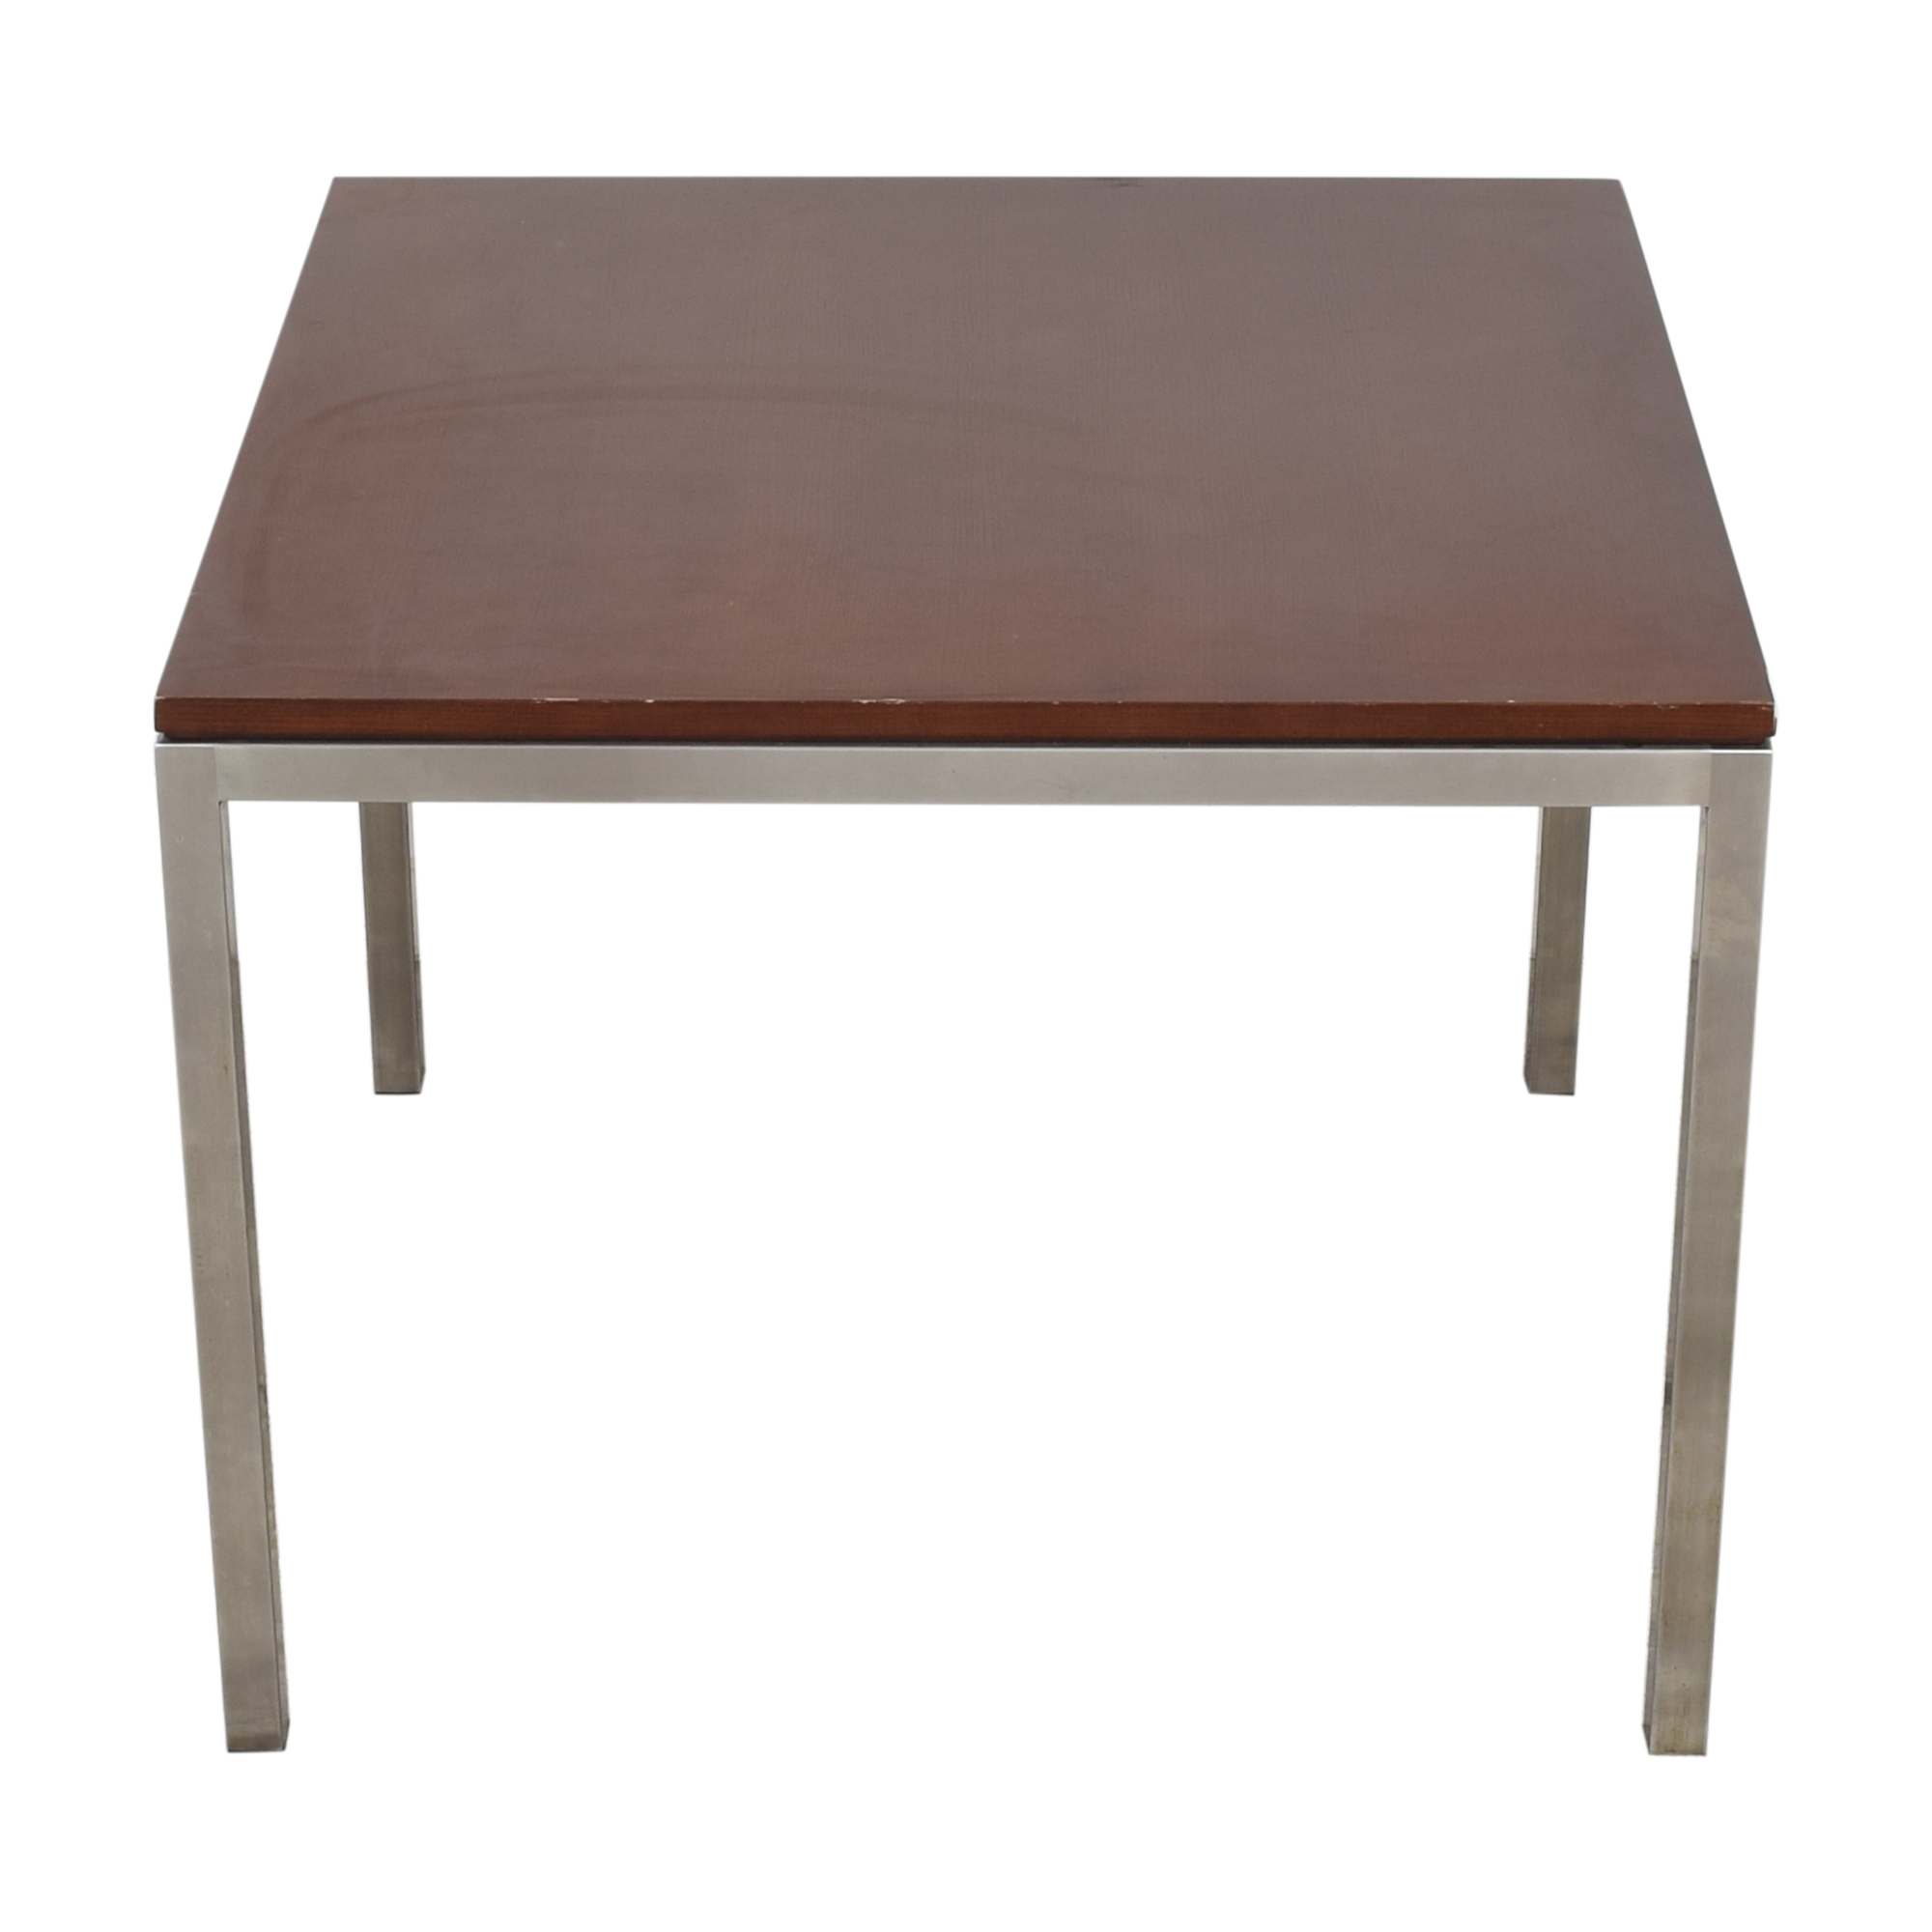 buy Ethan Allen Wood and Chrome Dining Table Ethan Allen Tables